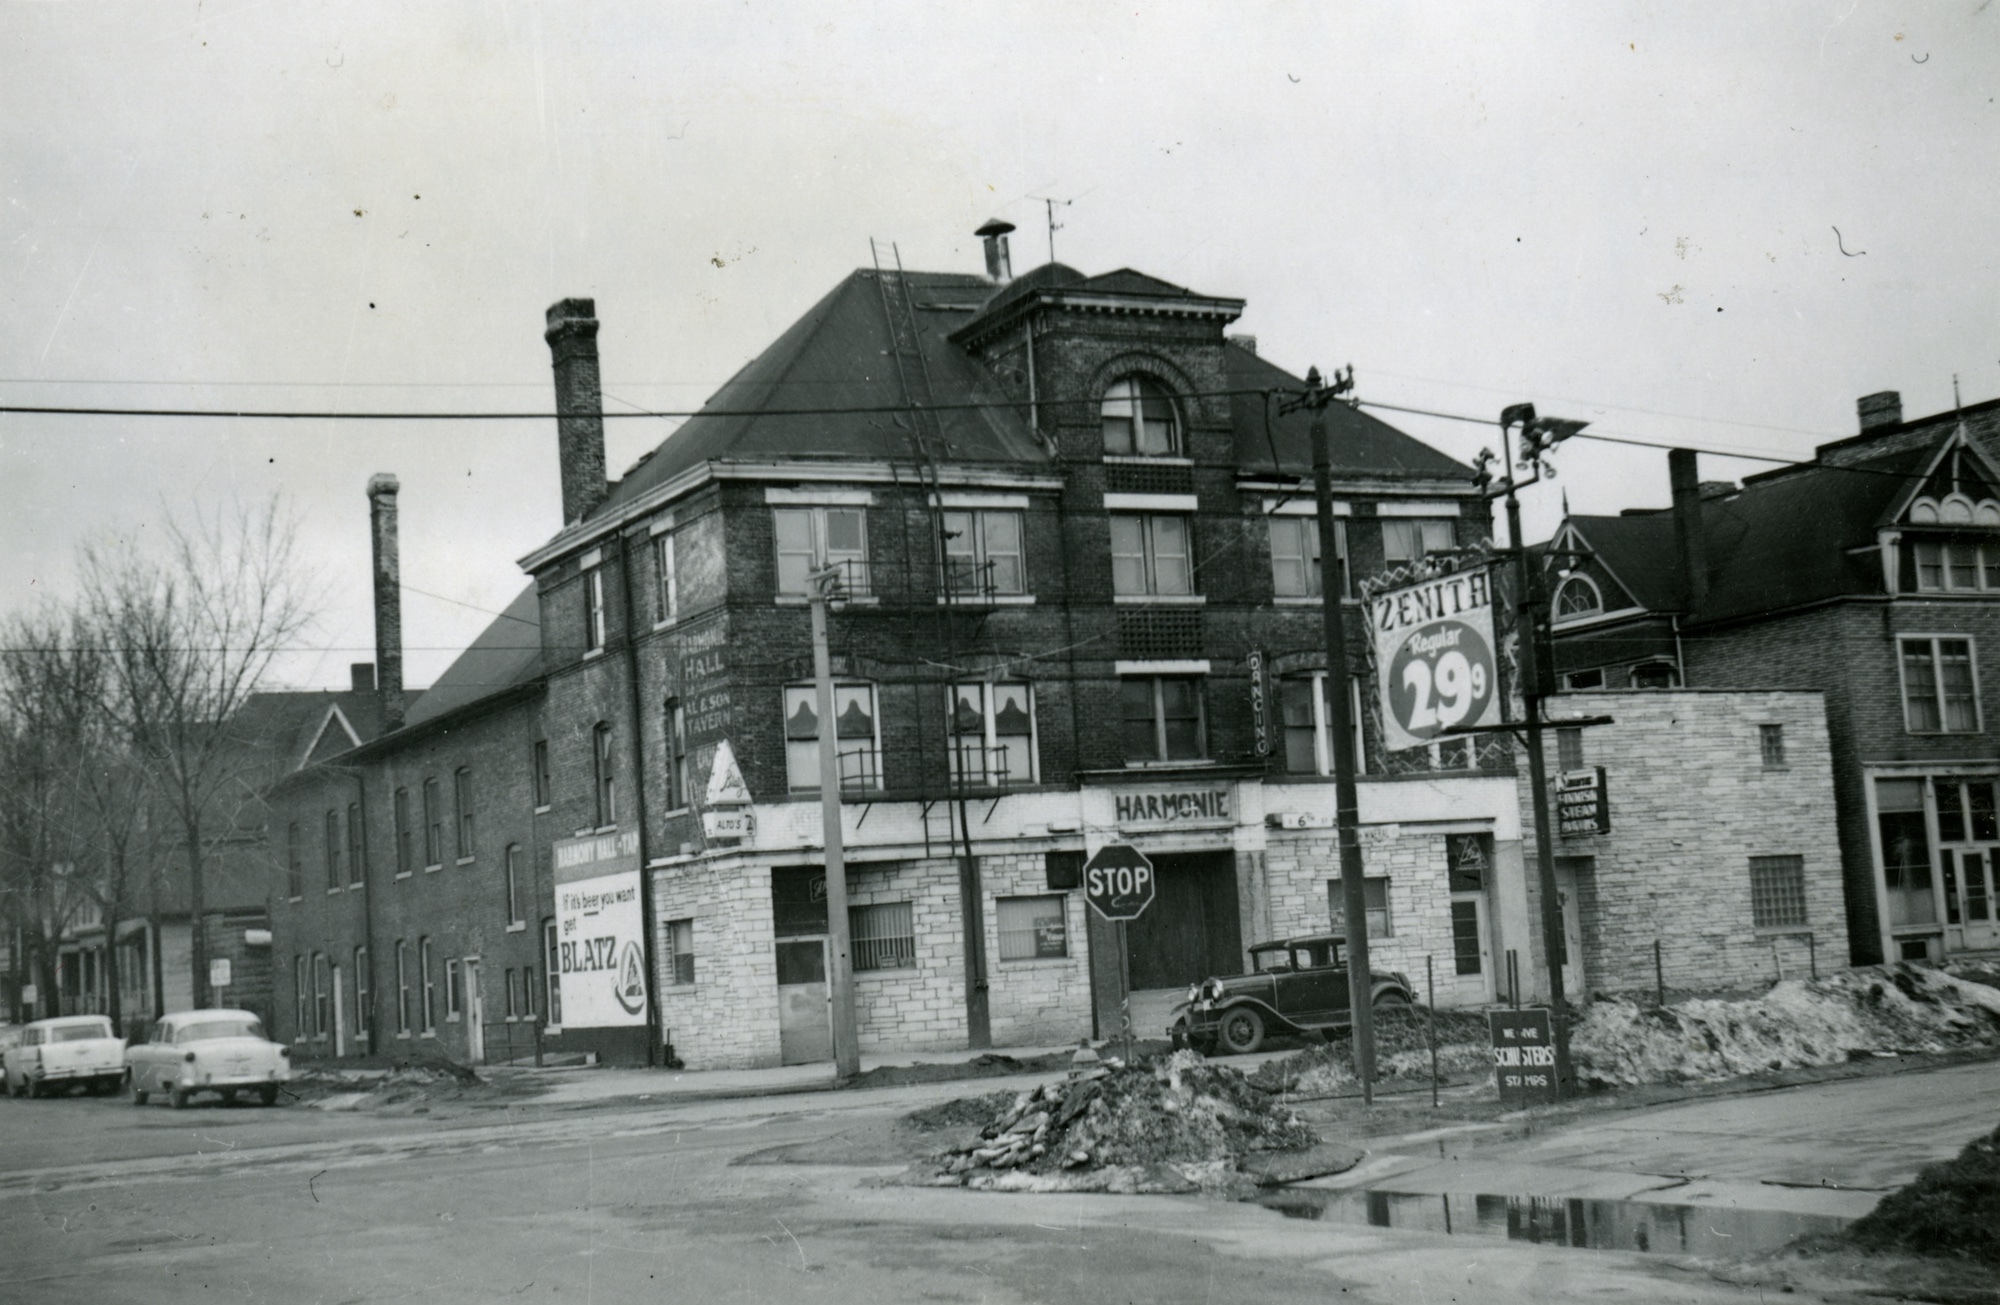 This photograph showcases Harmonie Hall, a social gathering space for Milwaukee's Slovenian community. The building was built in 1894 and razed in 1962.